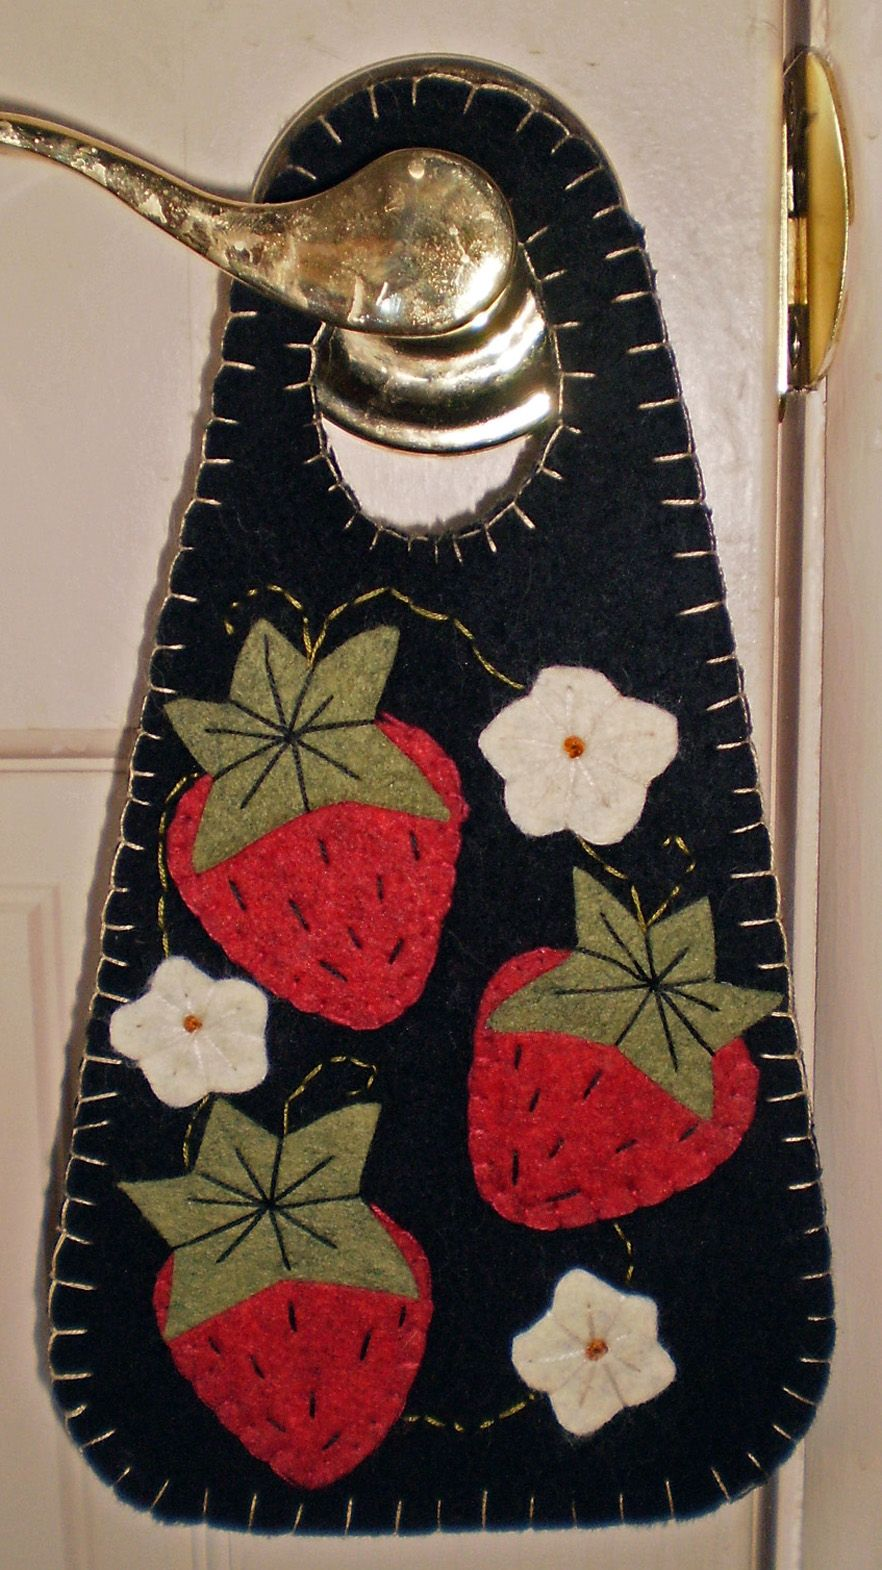 strawberries penny rug door hanger door hanger pinterest